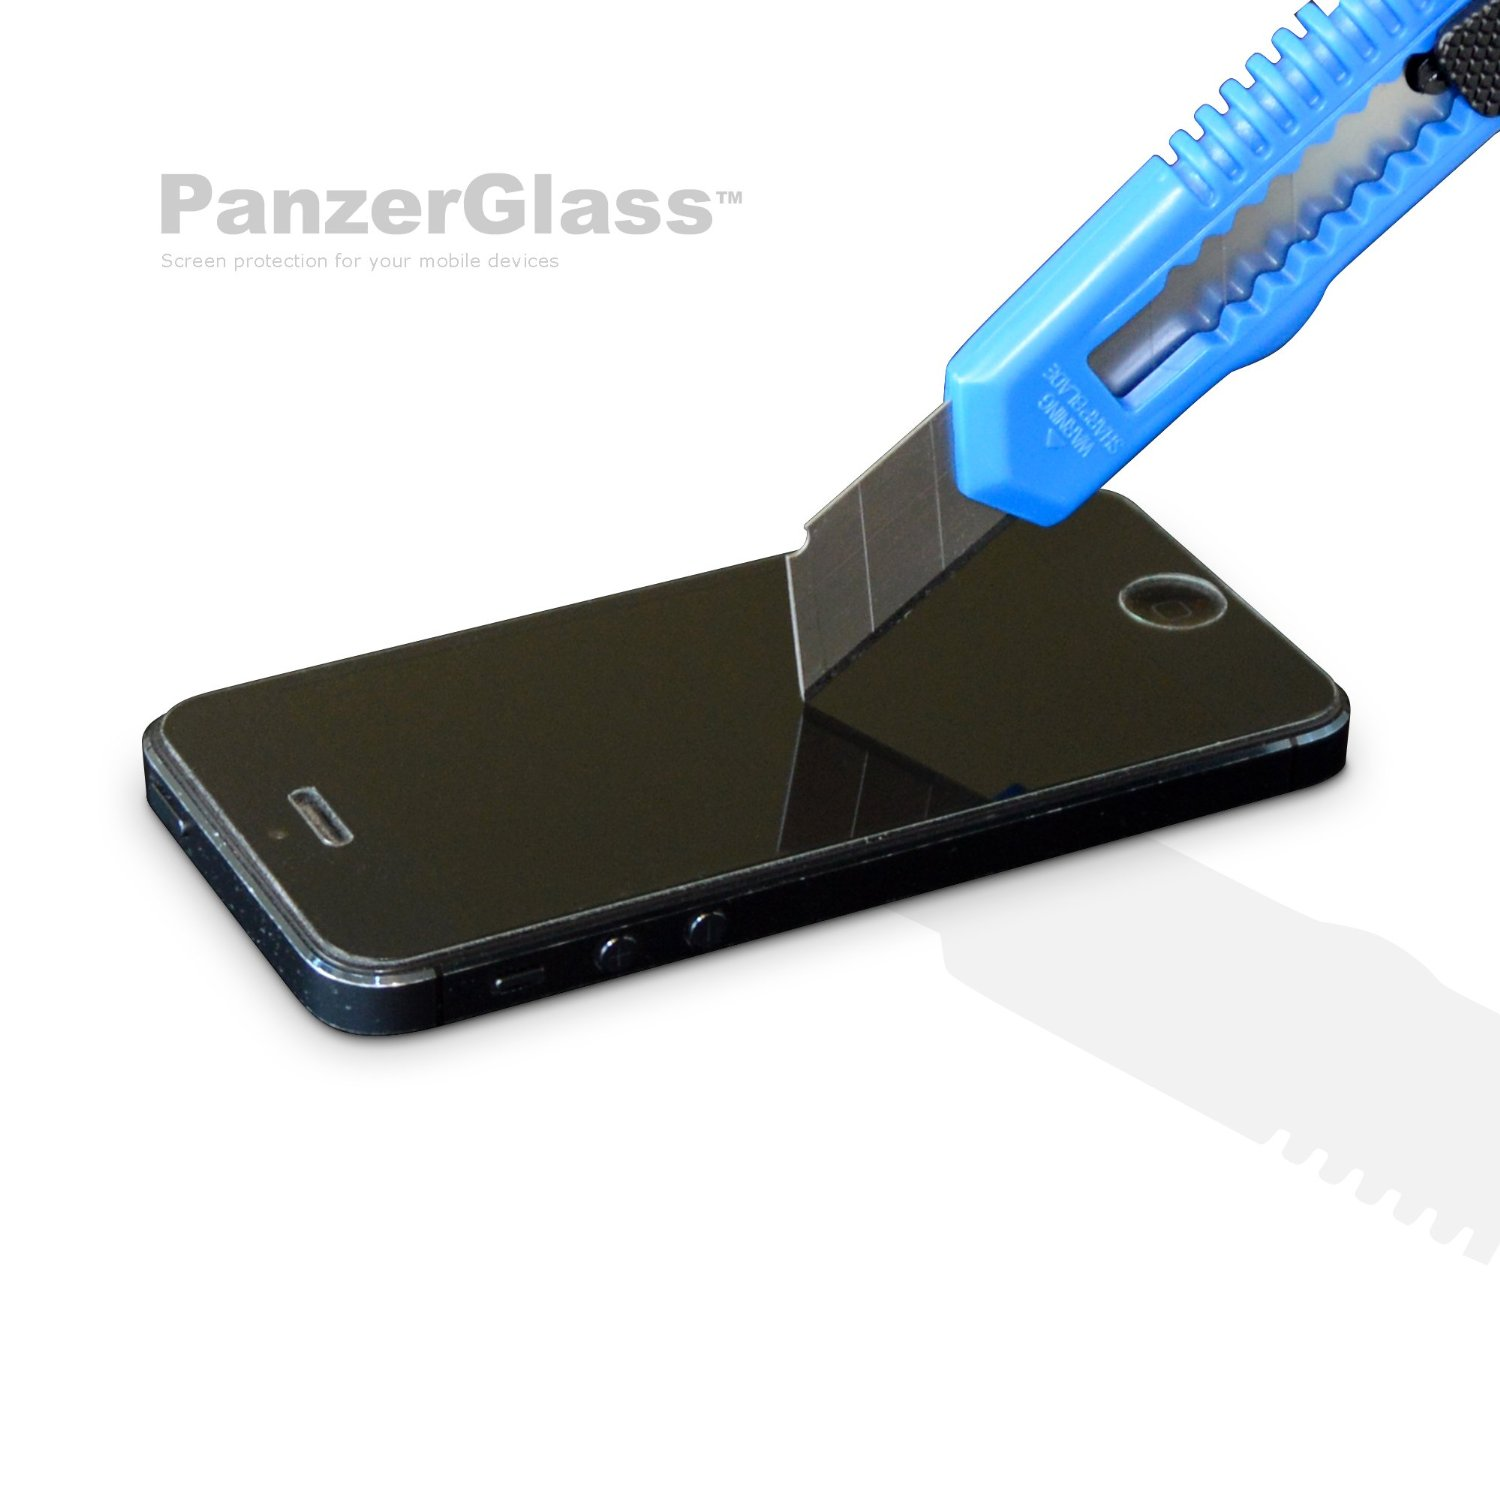 PanzerGlass iPhone SE Privacy Glass Screen Protector